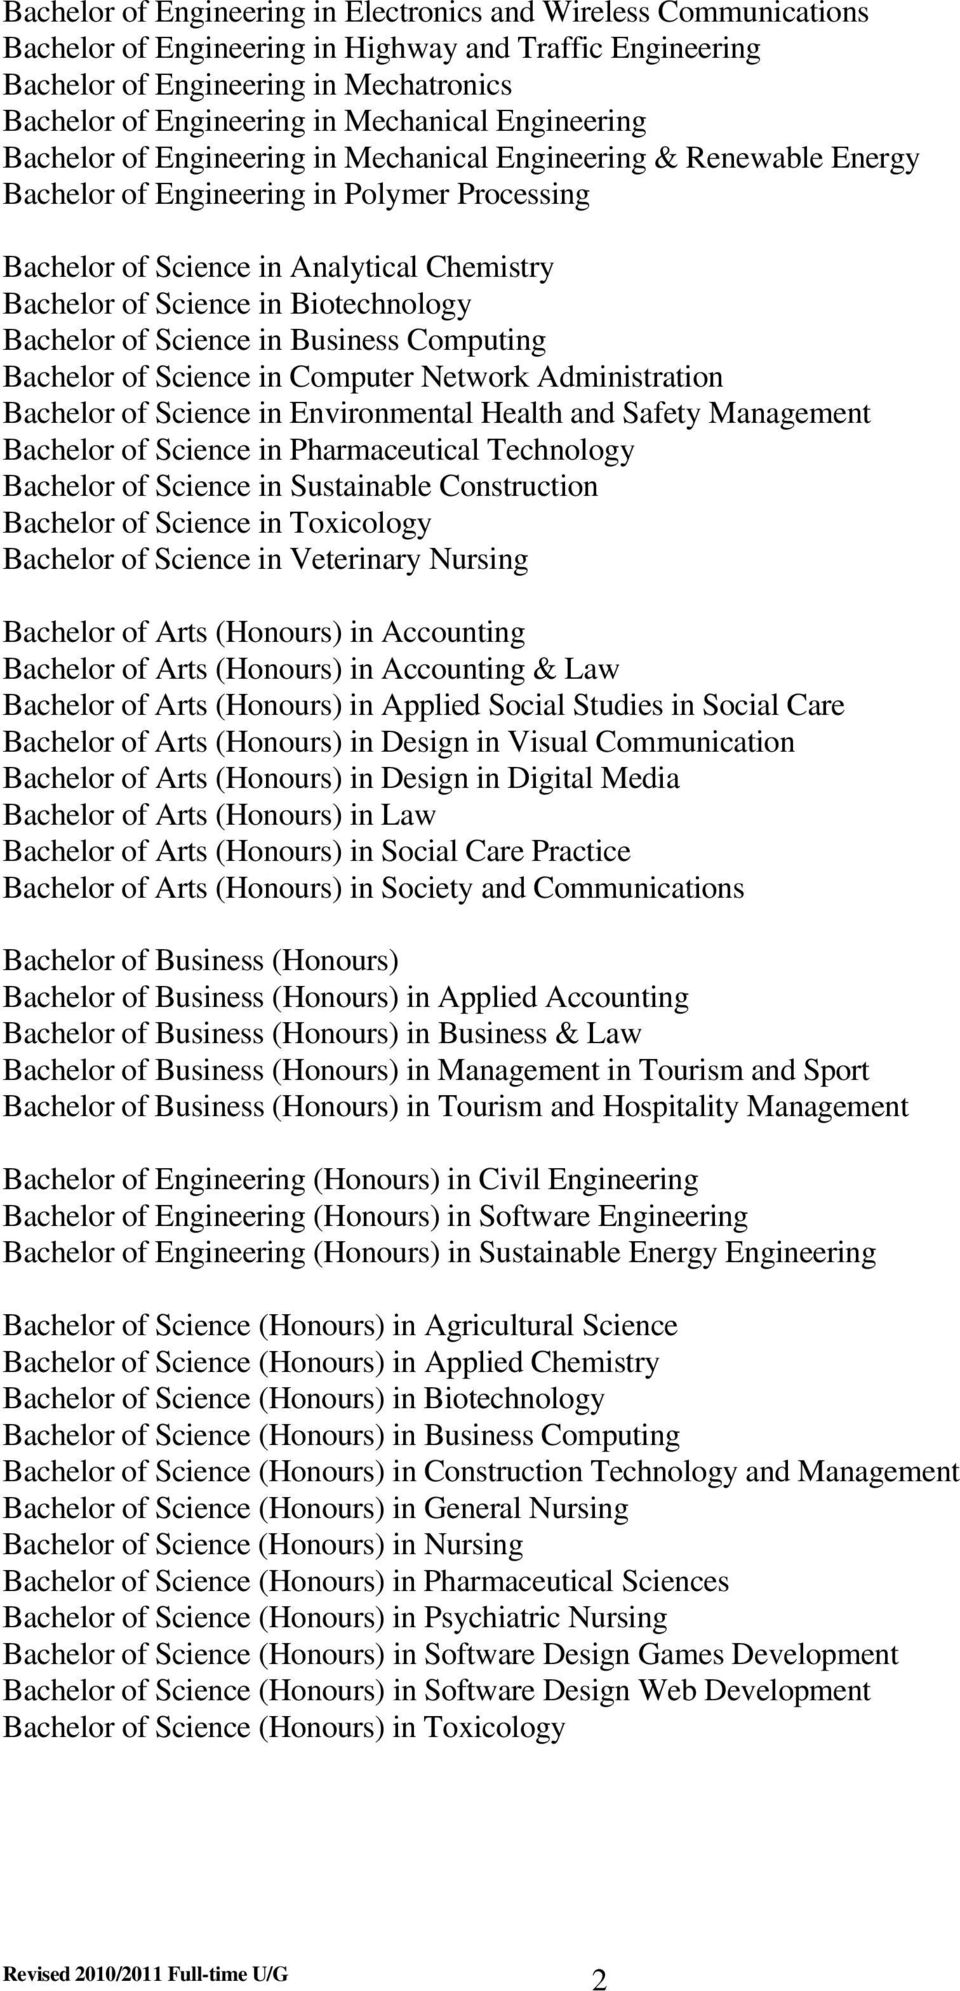 Science in Biotechnology Bachelor of Science in Business Computing Bachelor of Science in Computer Network Administration Bachelor of Science in Environmental Health and Safety Management Bachelor of